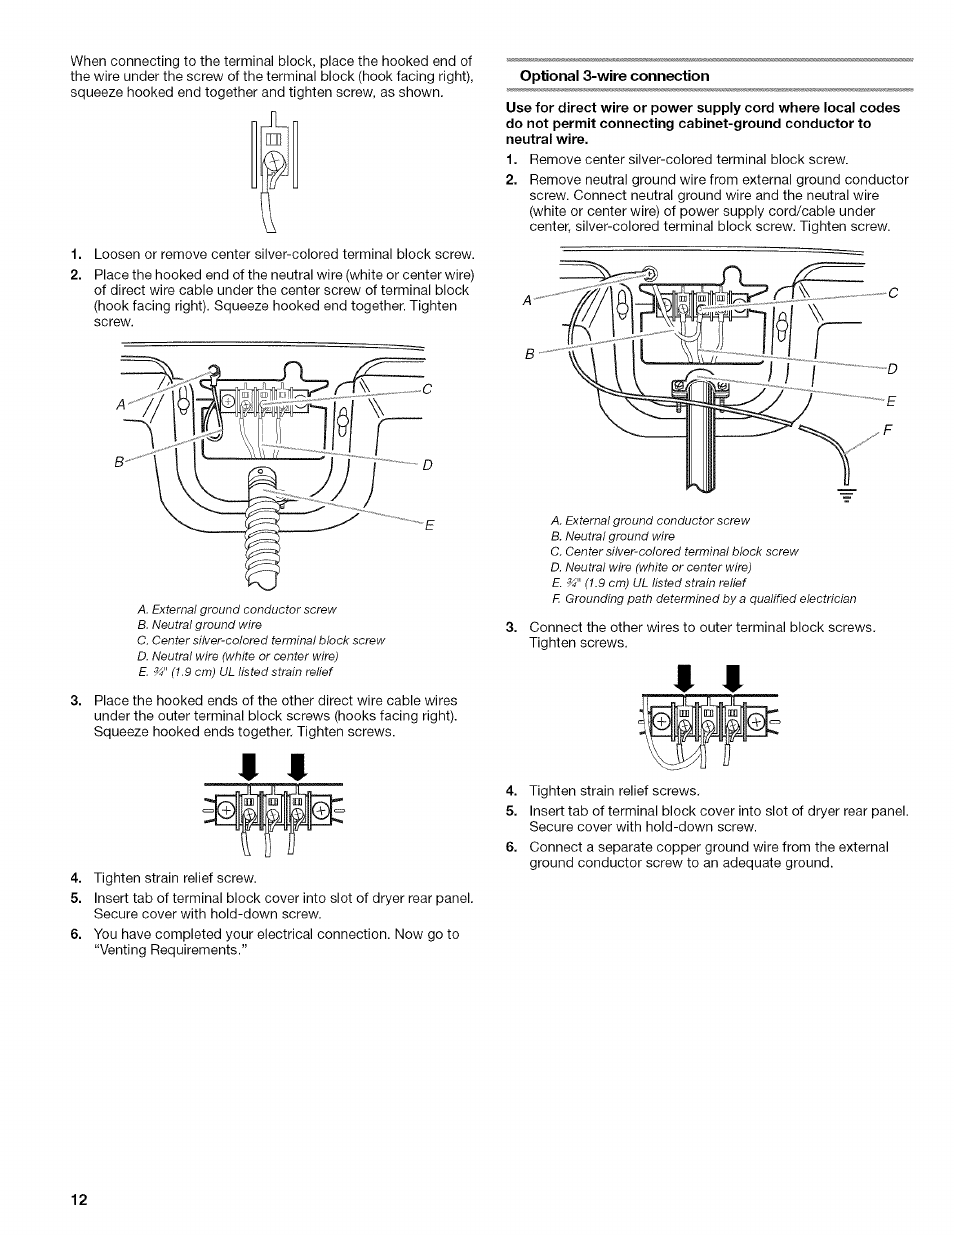 medium resolution of optional 3 wire connection kenmore elite oasis steam 110 6808 user manual page 12 60